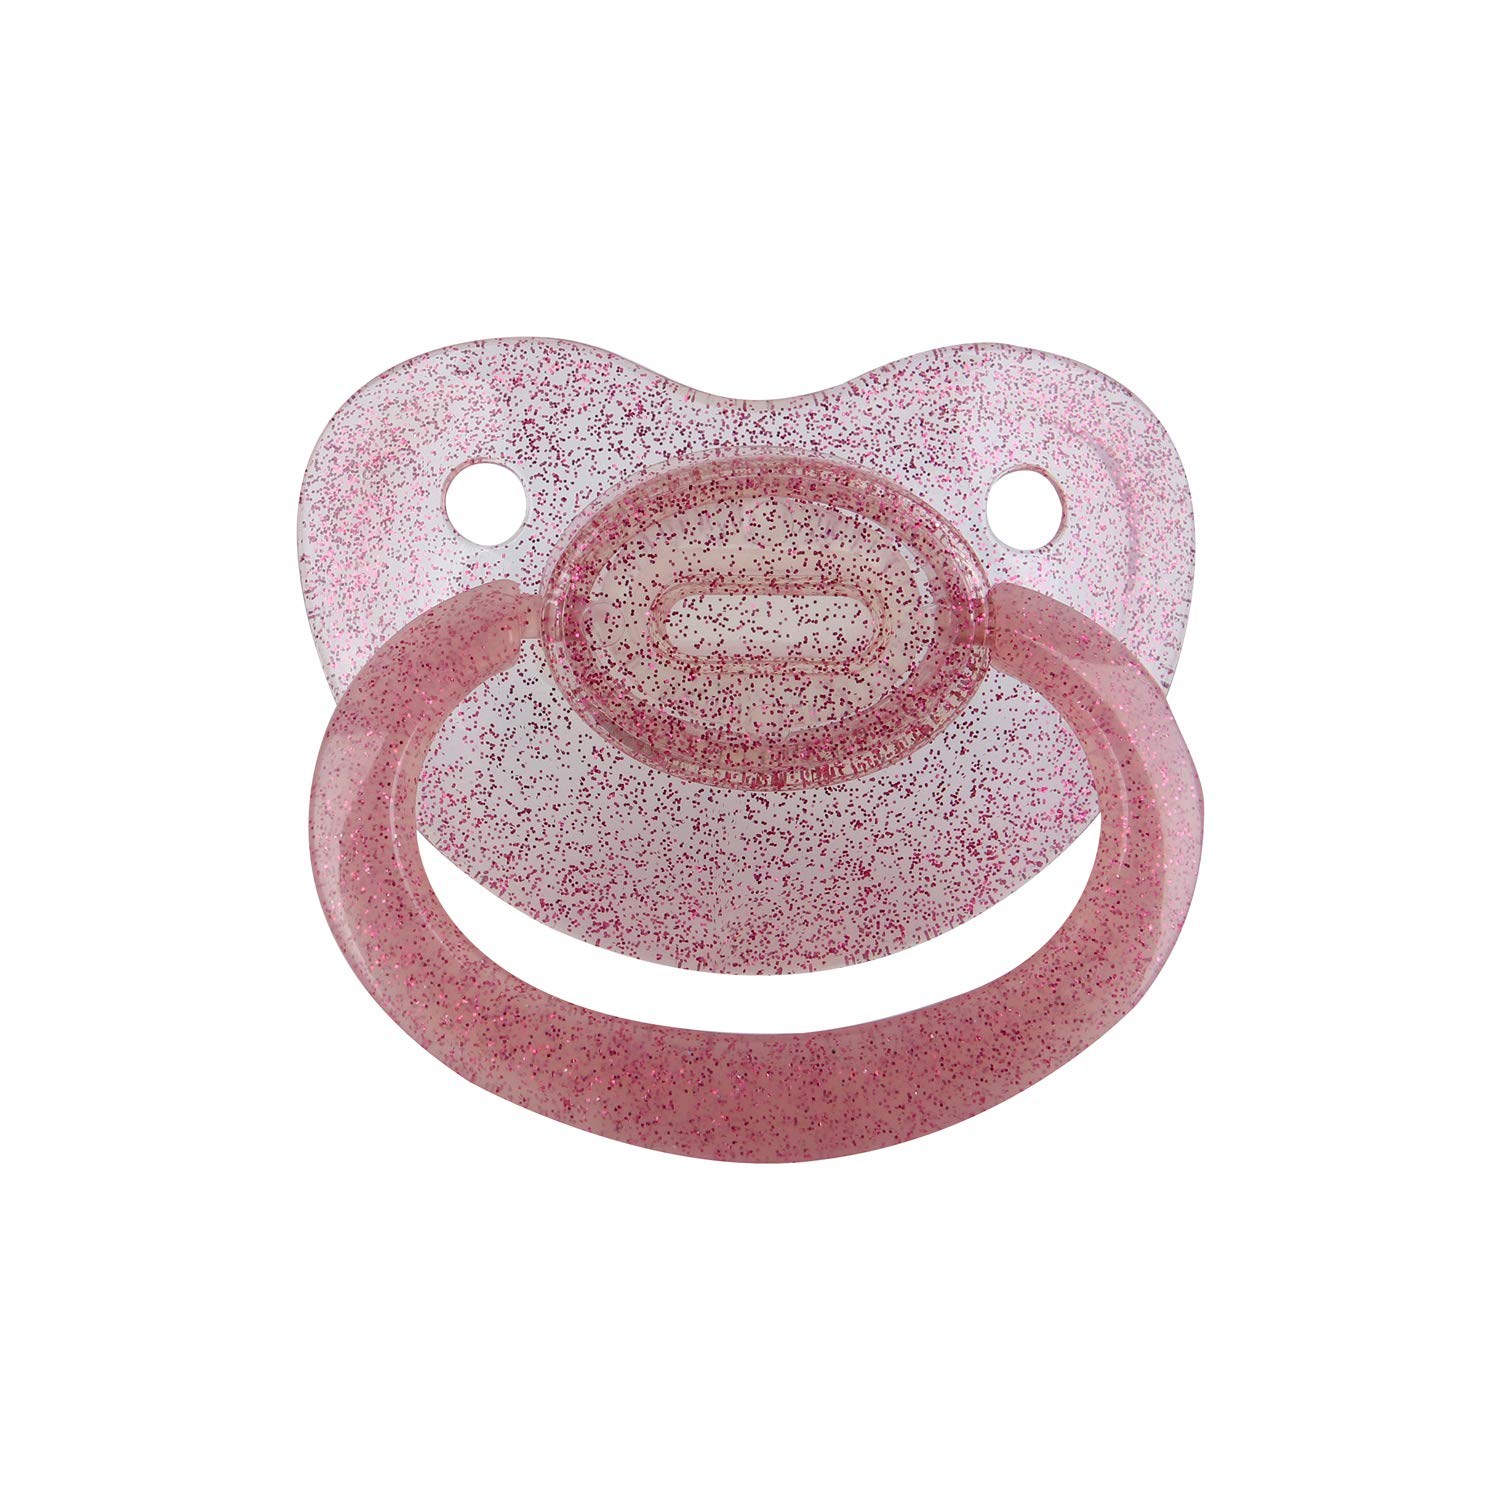 TEN@NIGHT Adult Pacifier Size Dummy ABDL Silicone Pacifier Adult Nipple